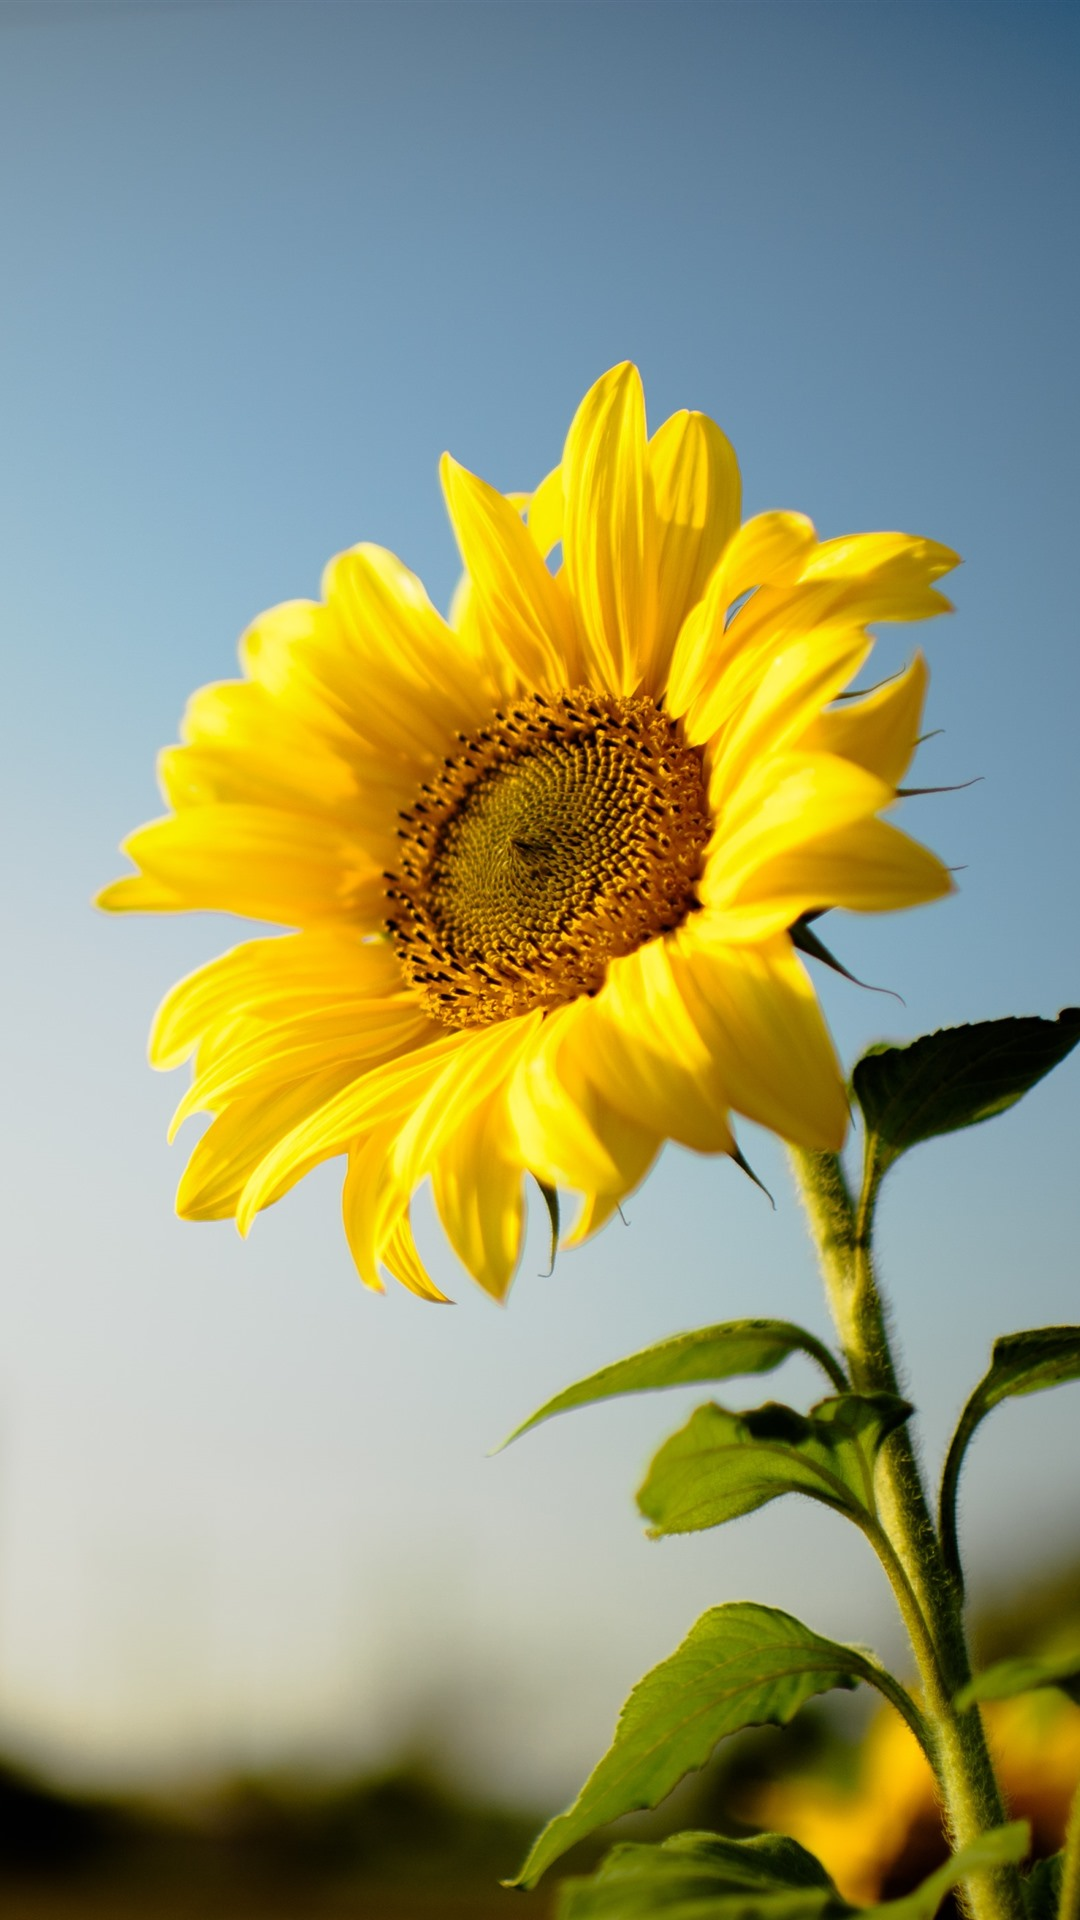 Wallpaper Sunflower Yellow Petals Hazy Background